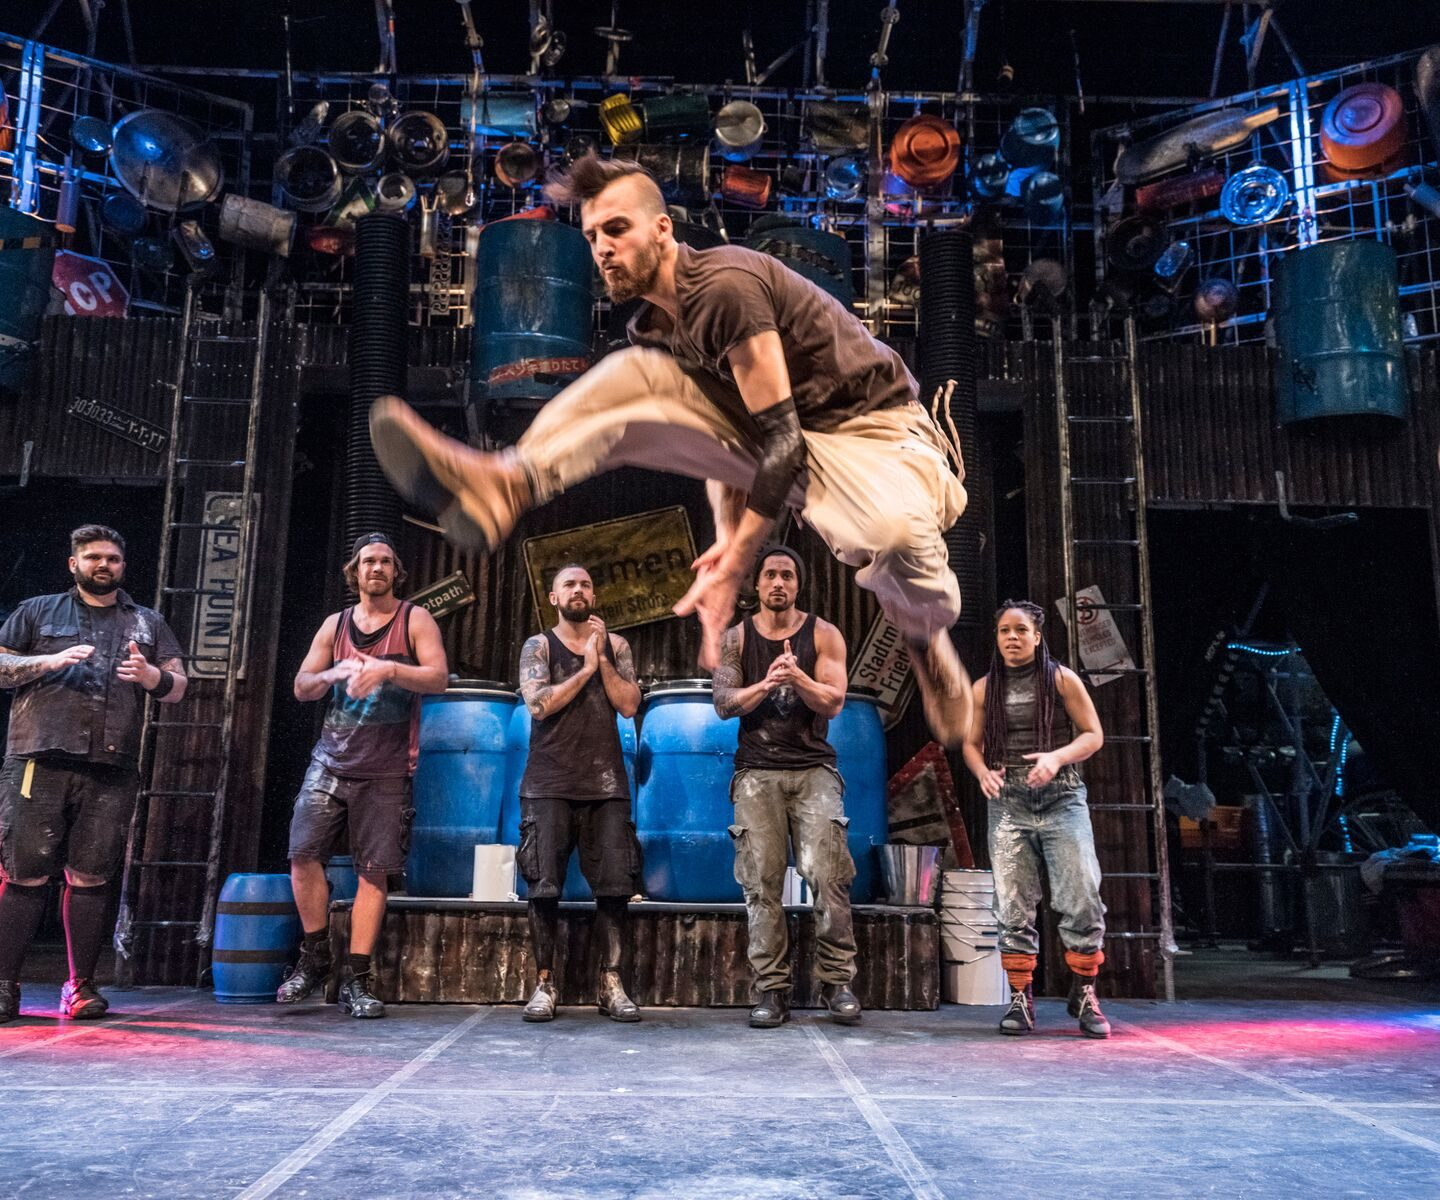 Enter to Win Tickets to see STOMP at Montecasino's Teatro, Johannesburg